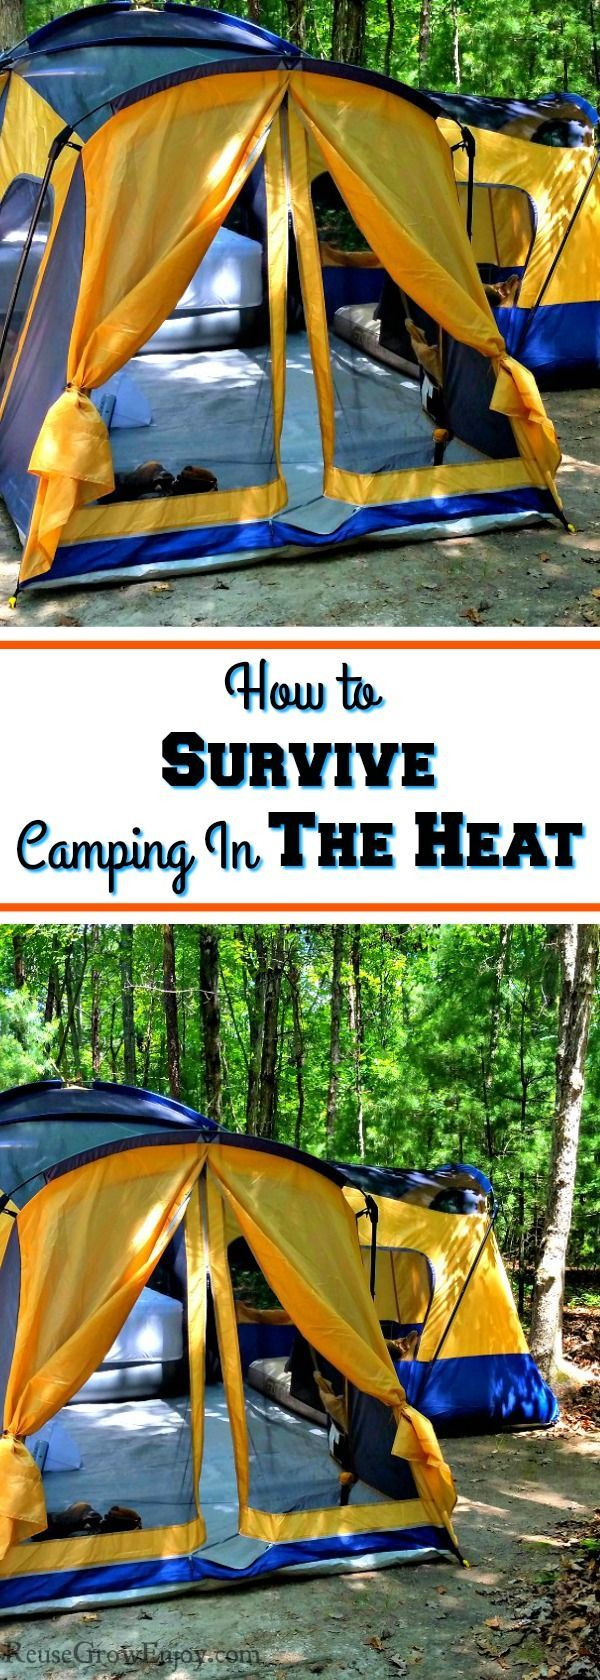 Want to go camping but the summer heat is to much? Check out these tips on How to Survive Camping In The Heat!